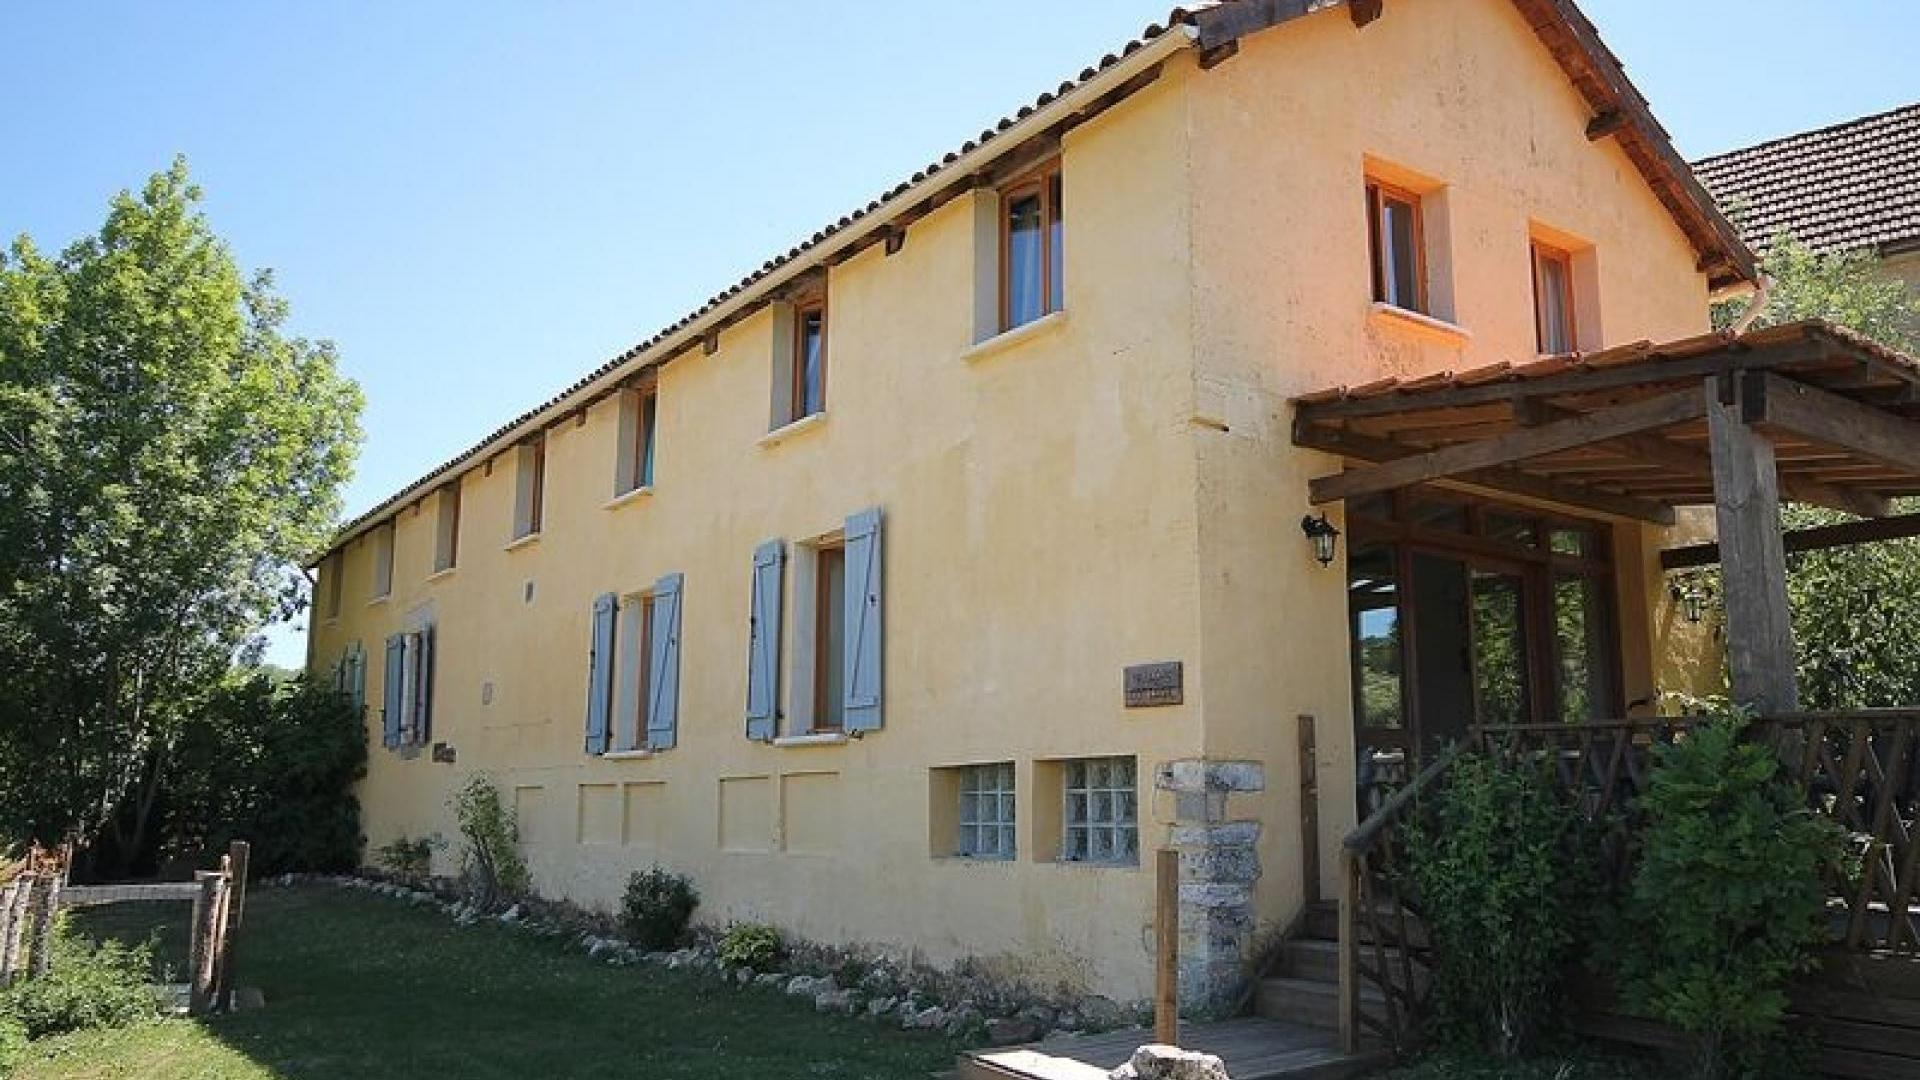 6 Bedroom Cottage/shared facilities in Midi-Pyrenees, France